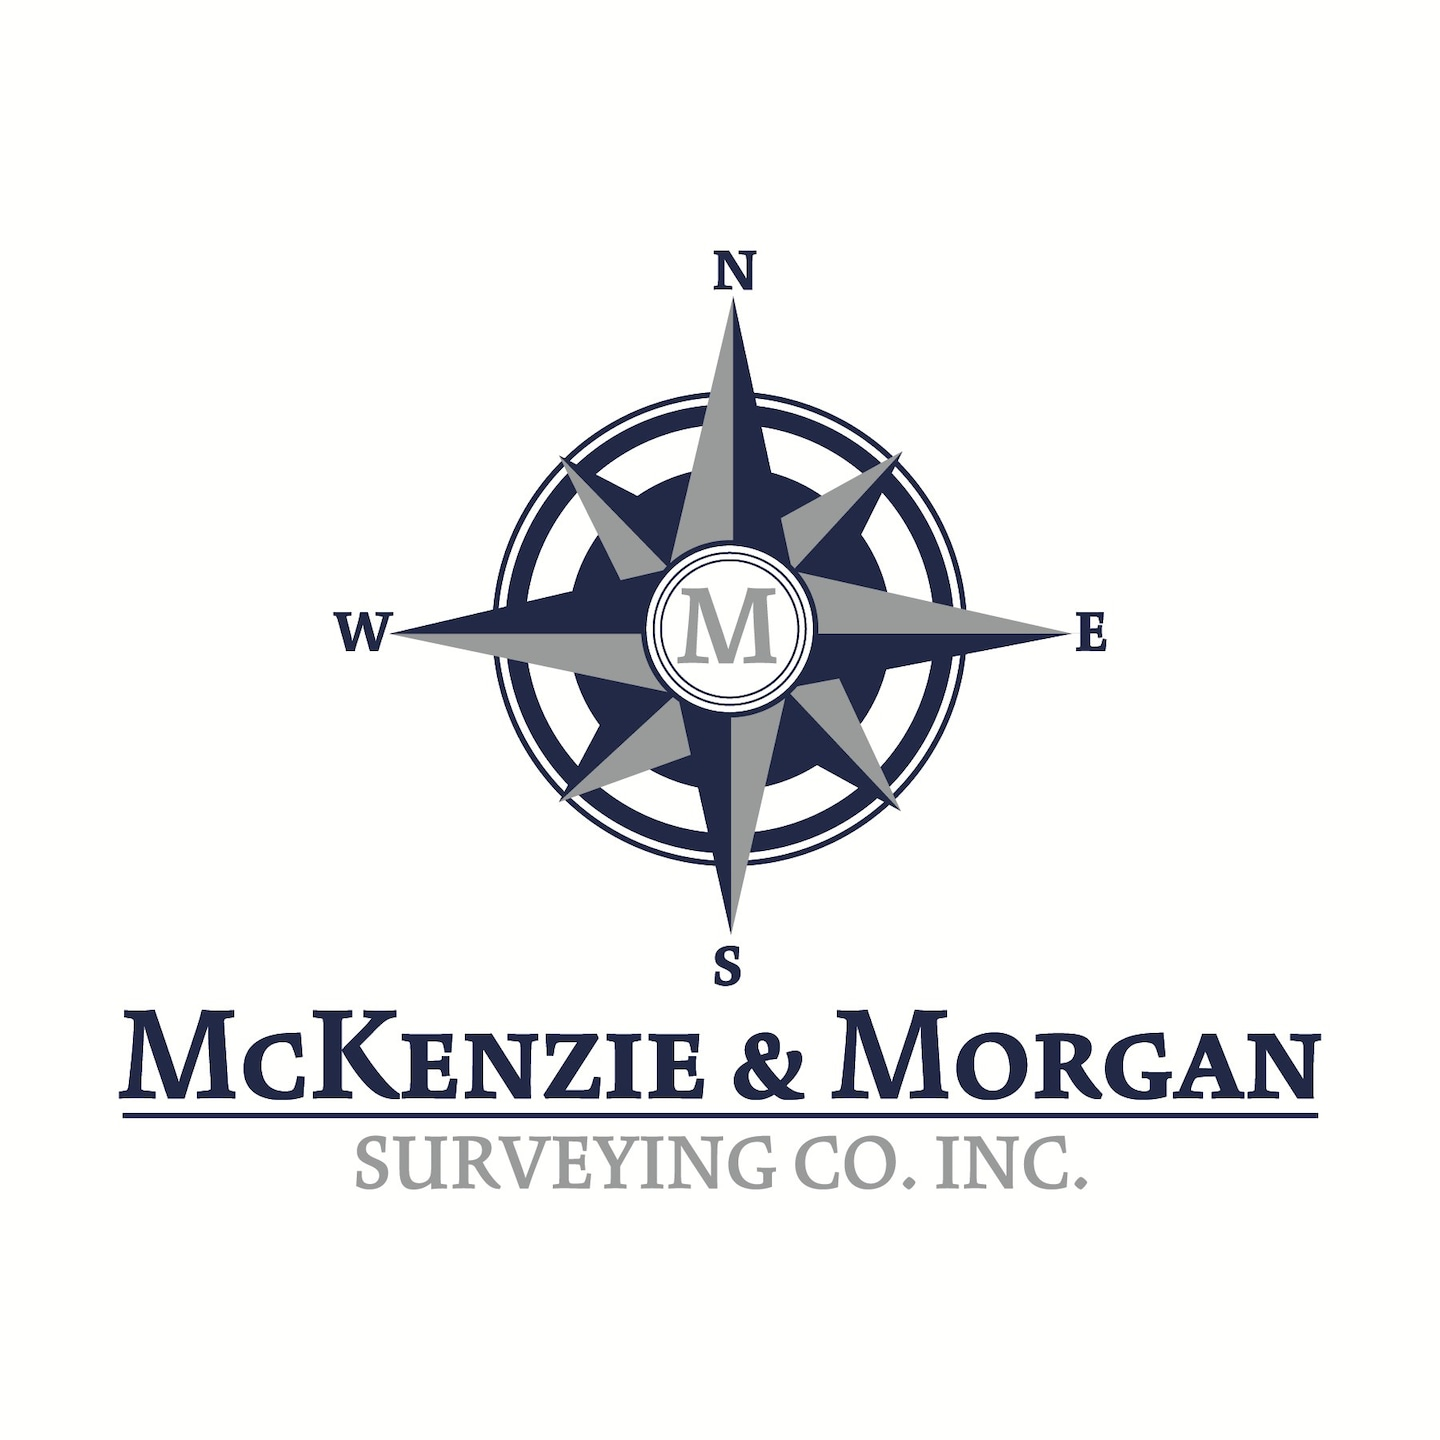 McKenzie & Morgan Surveying Co Inc